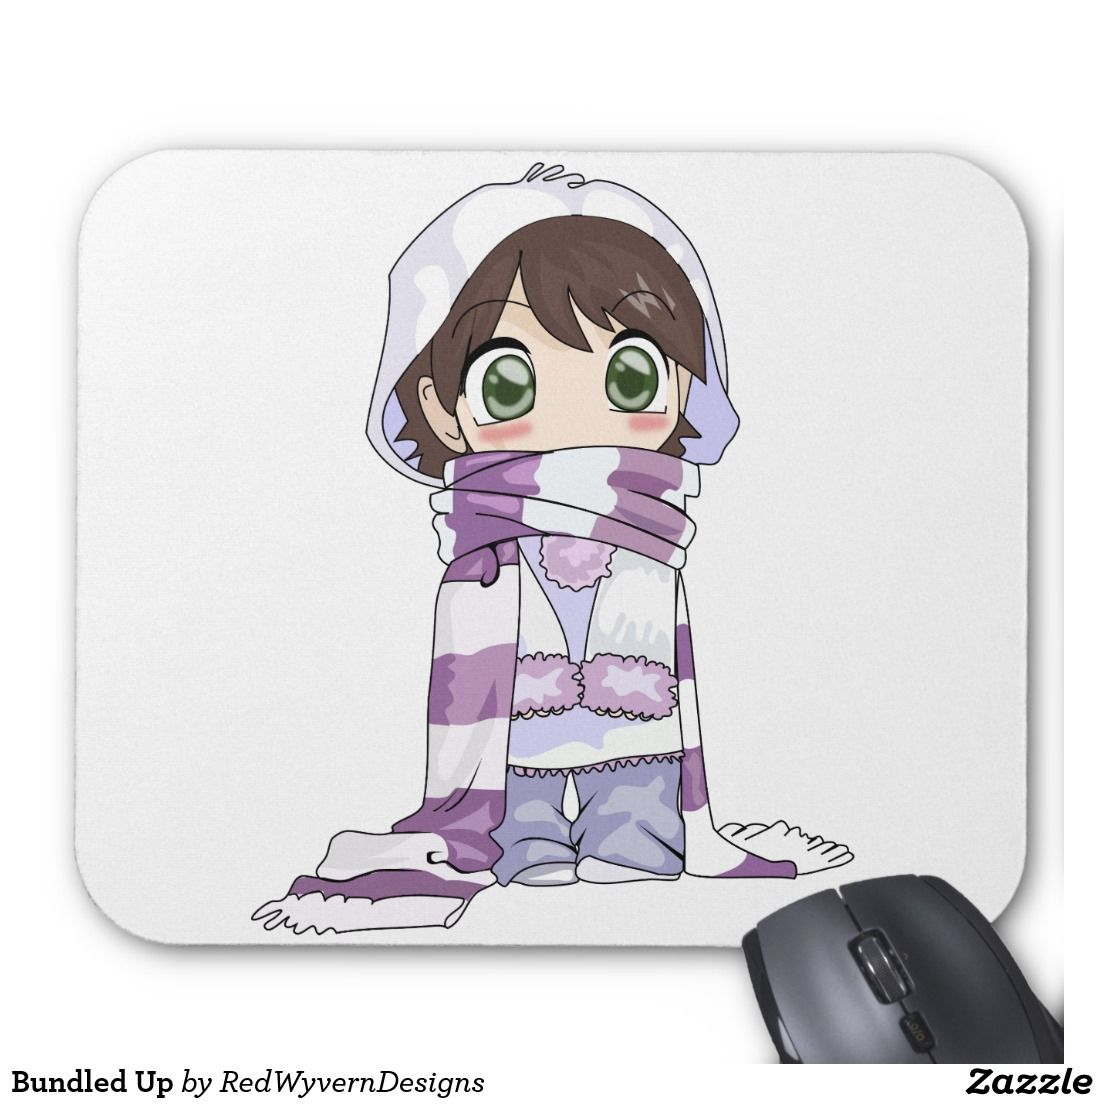 Bundled Up Mouse Pad  Zazzle.com in 9  Anime child, Anime